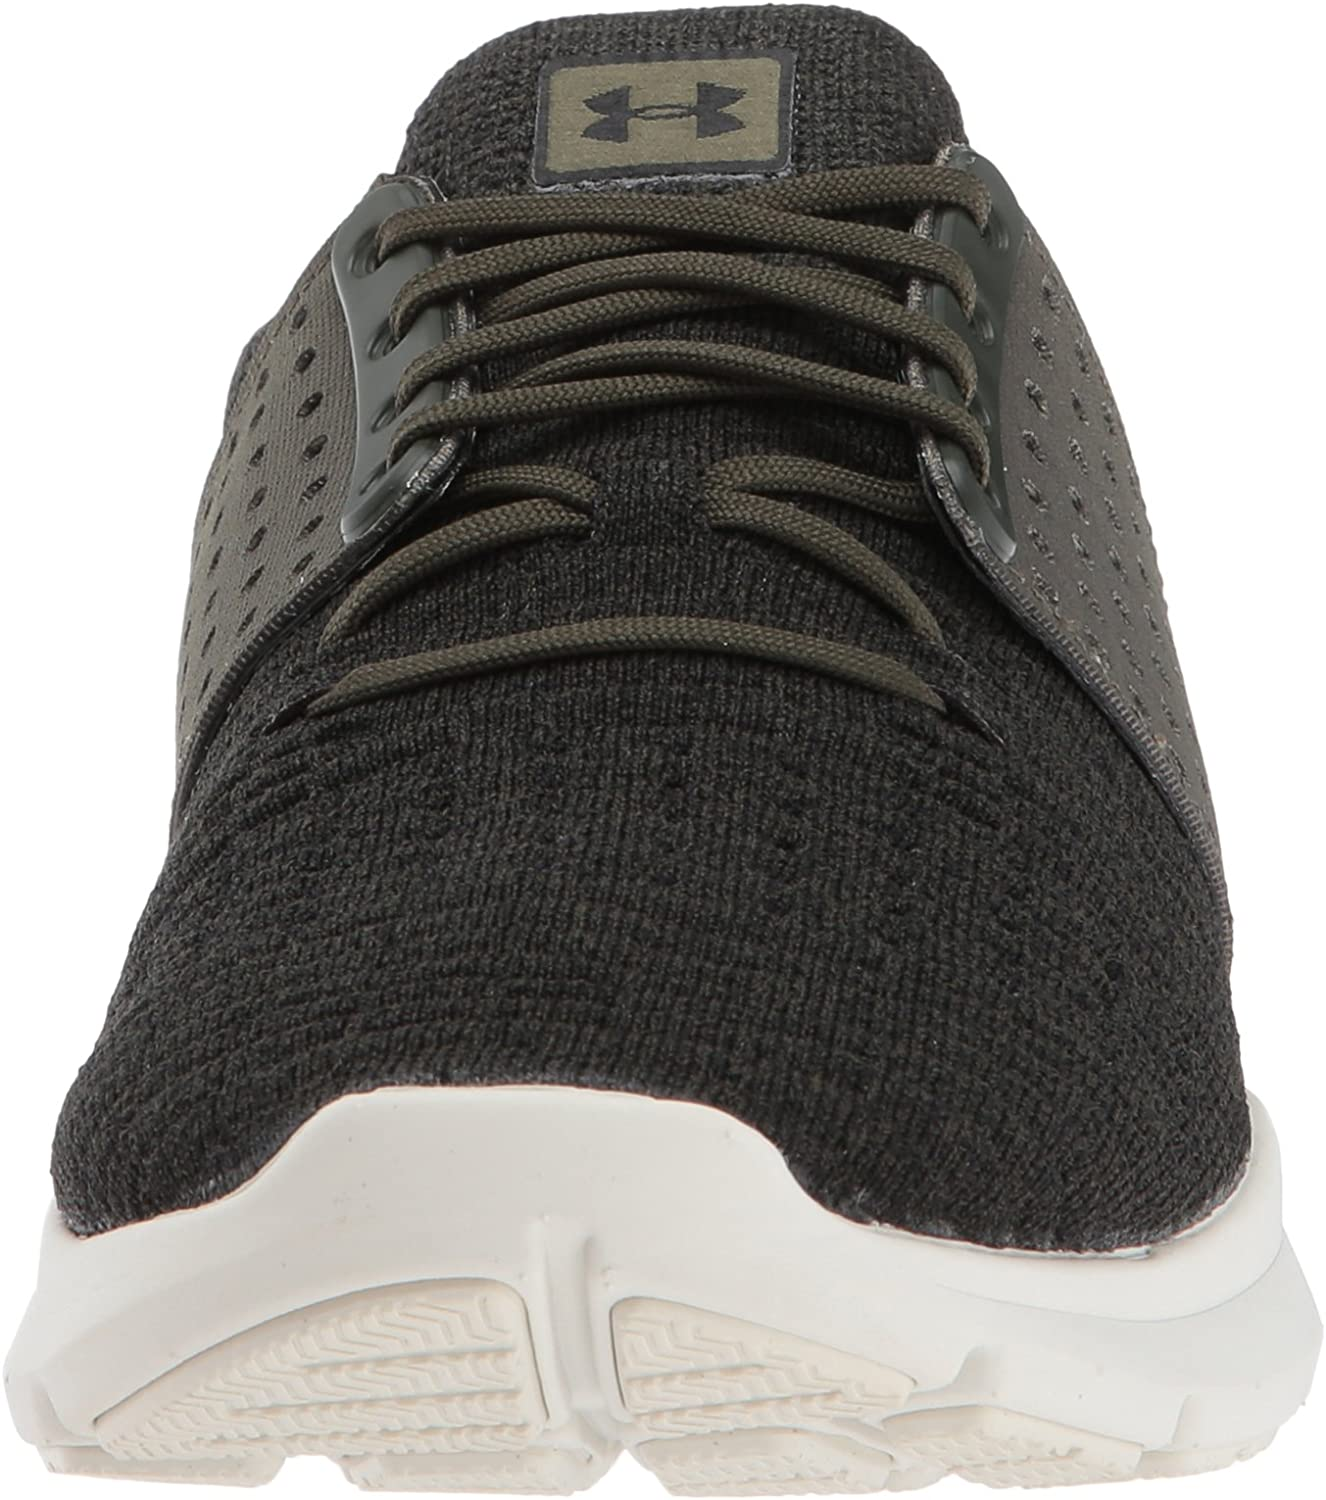 Under Armour Men s Speedform Slingwrap Running Shoe